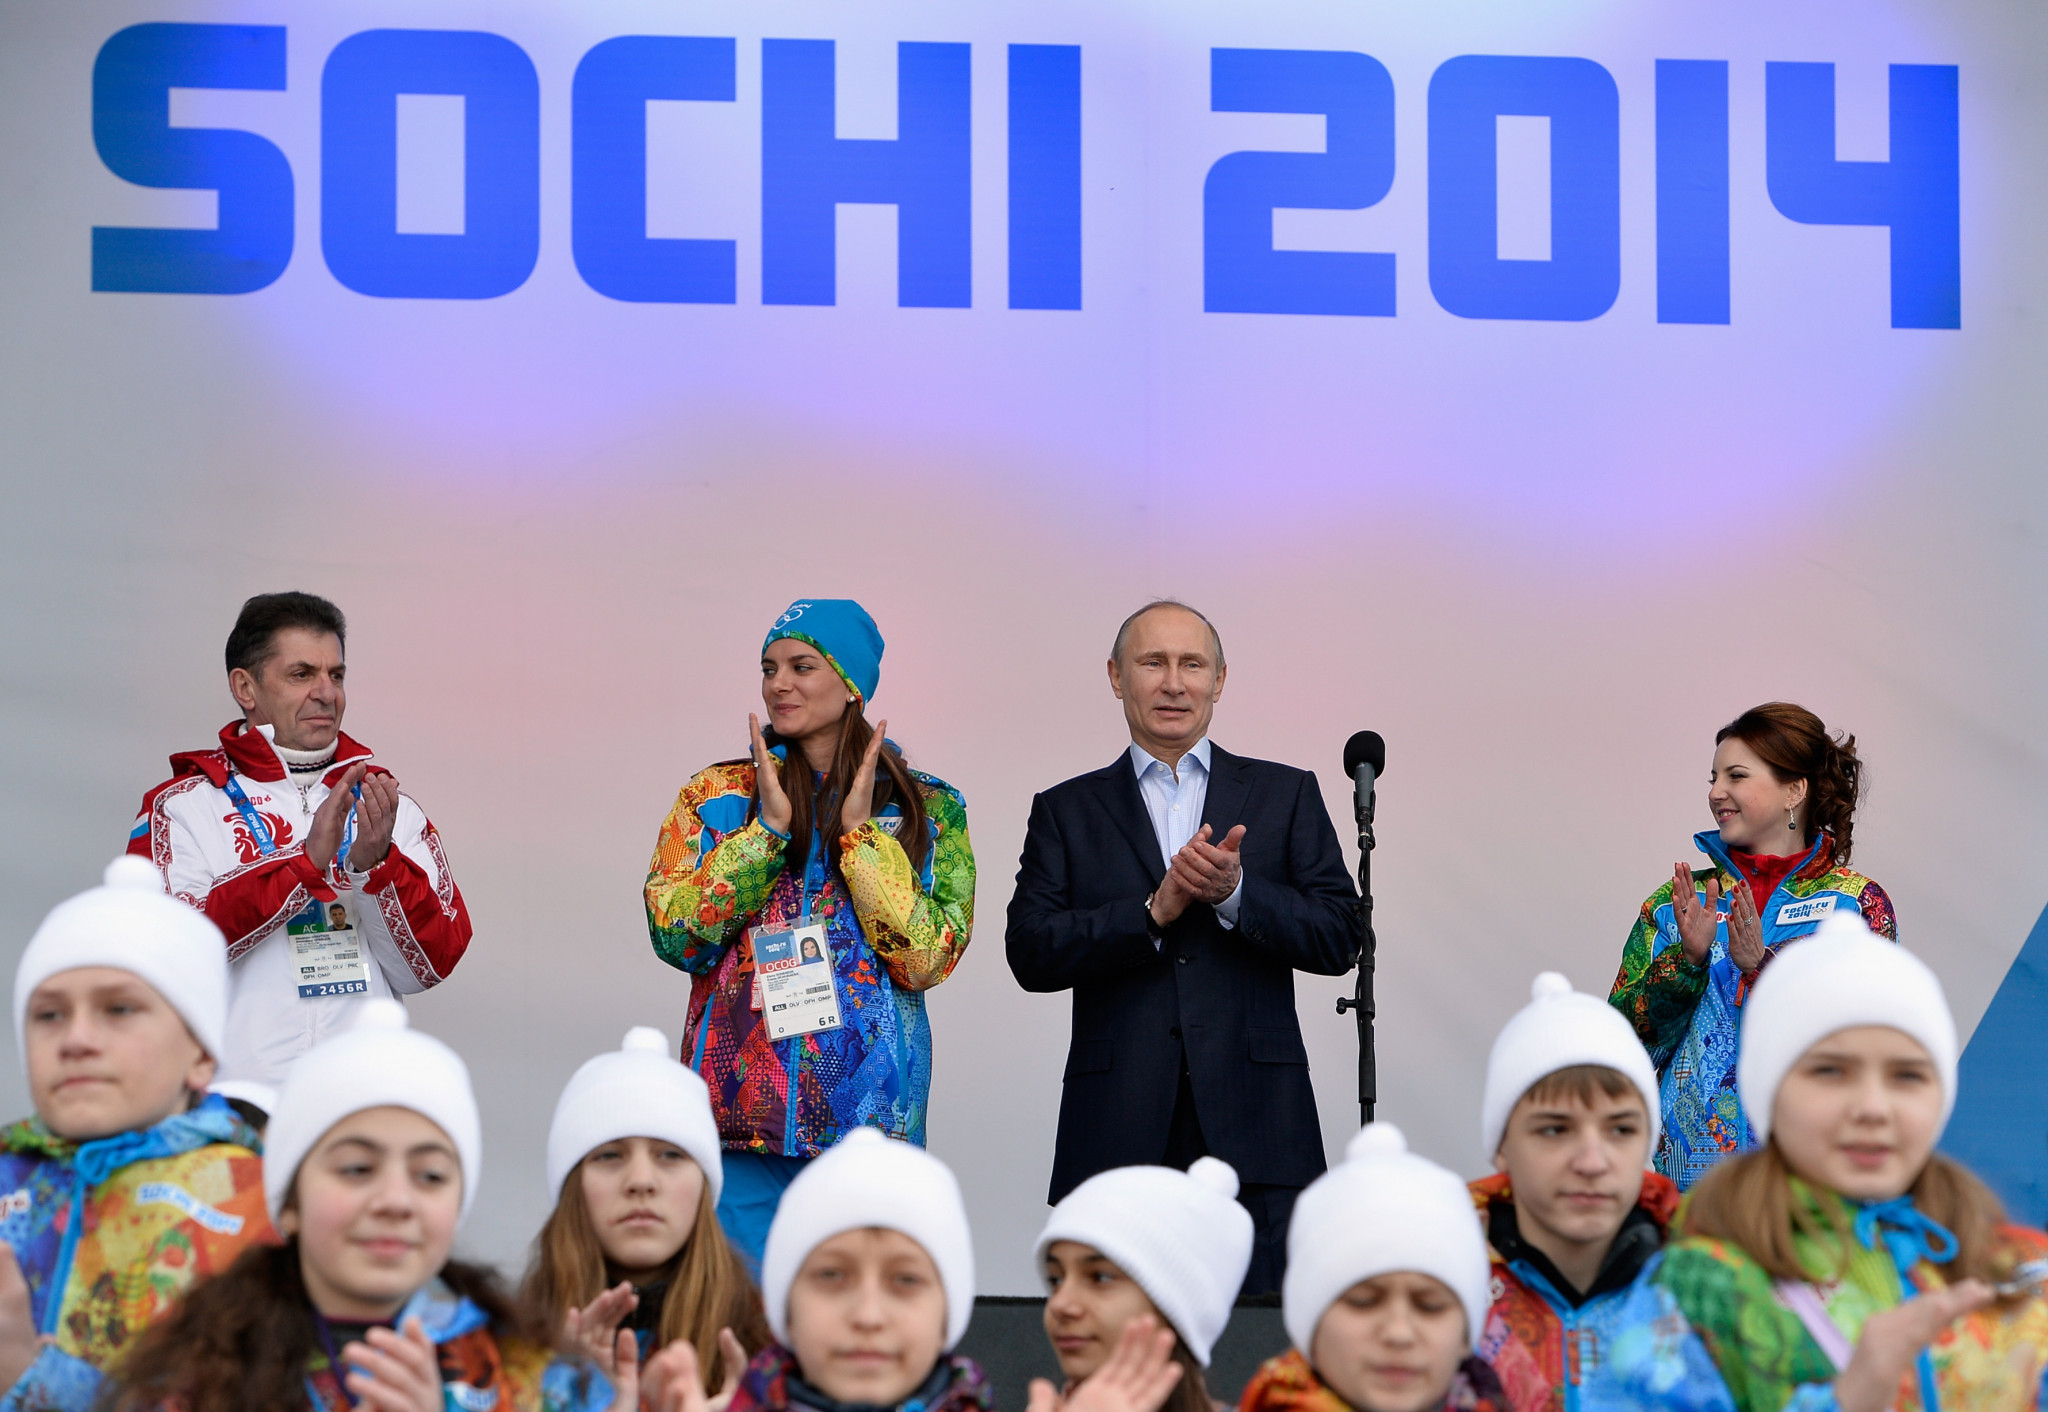 Alexander Kravtsov, left, was Russia's Chef de Mission at Sochi 2014 ©Getty Images